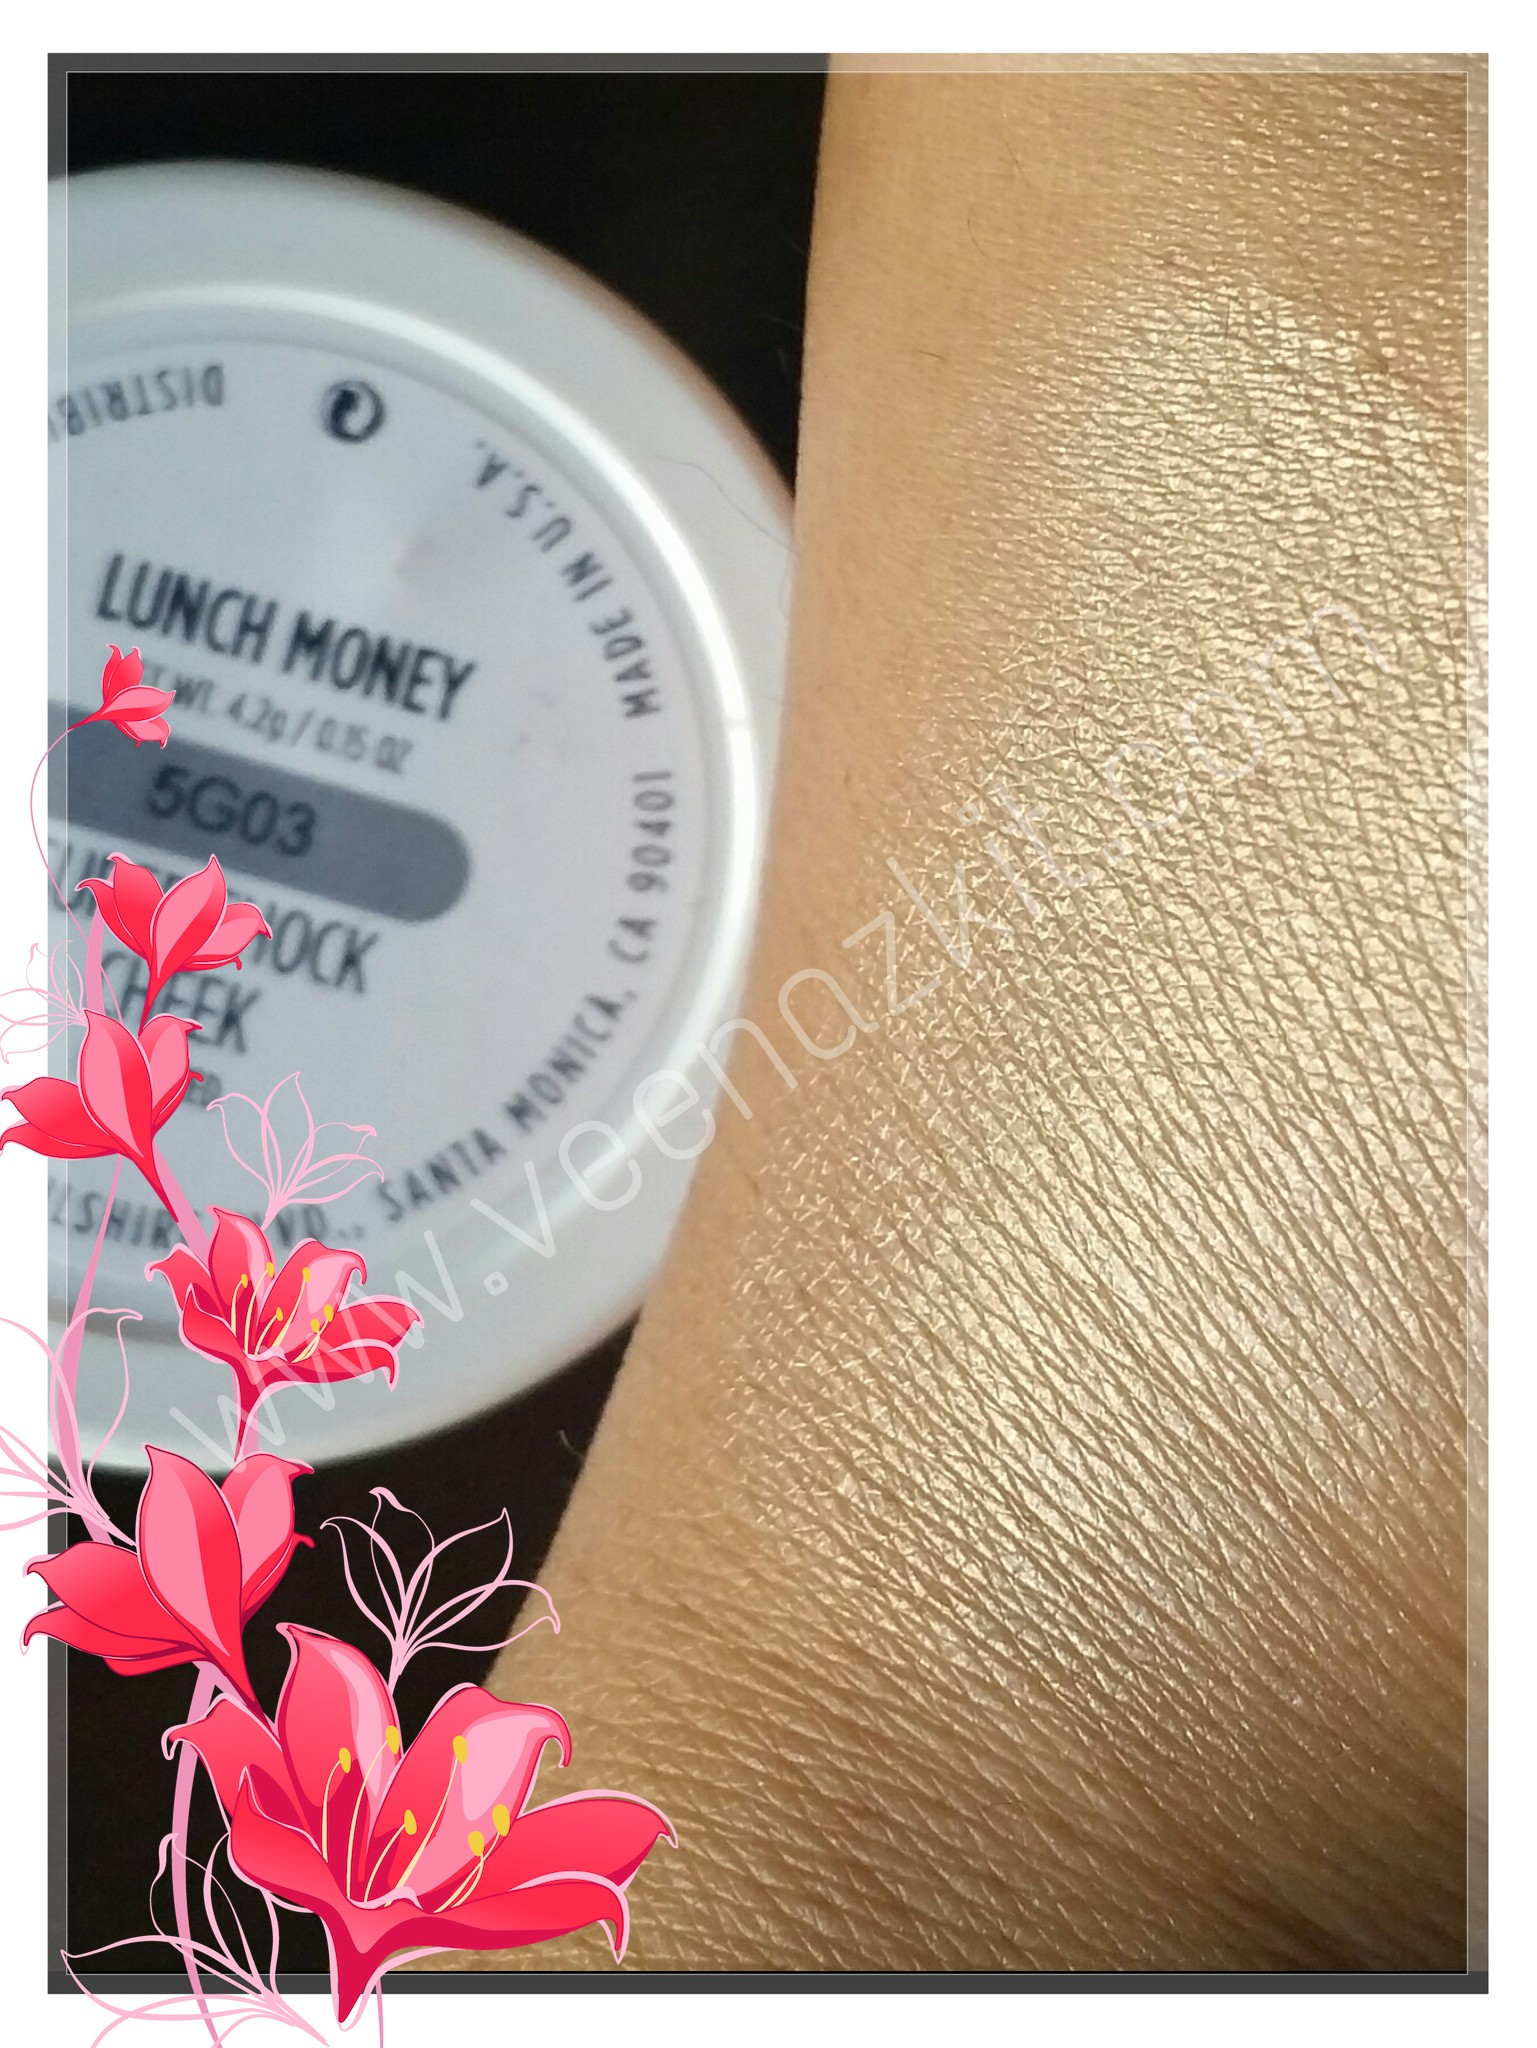 Swatch of the Day- Colour pop Supershock Highlighter